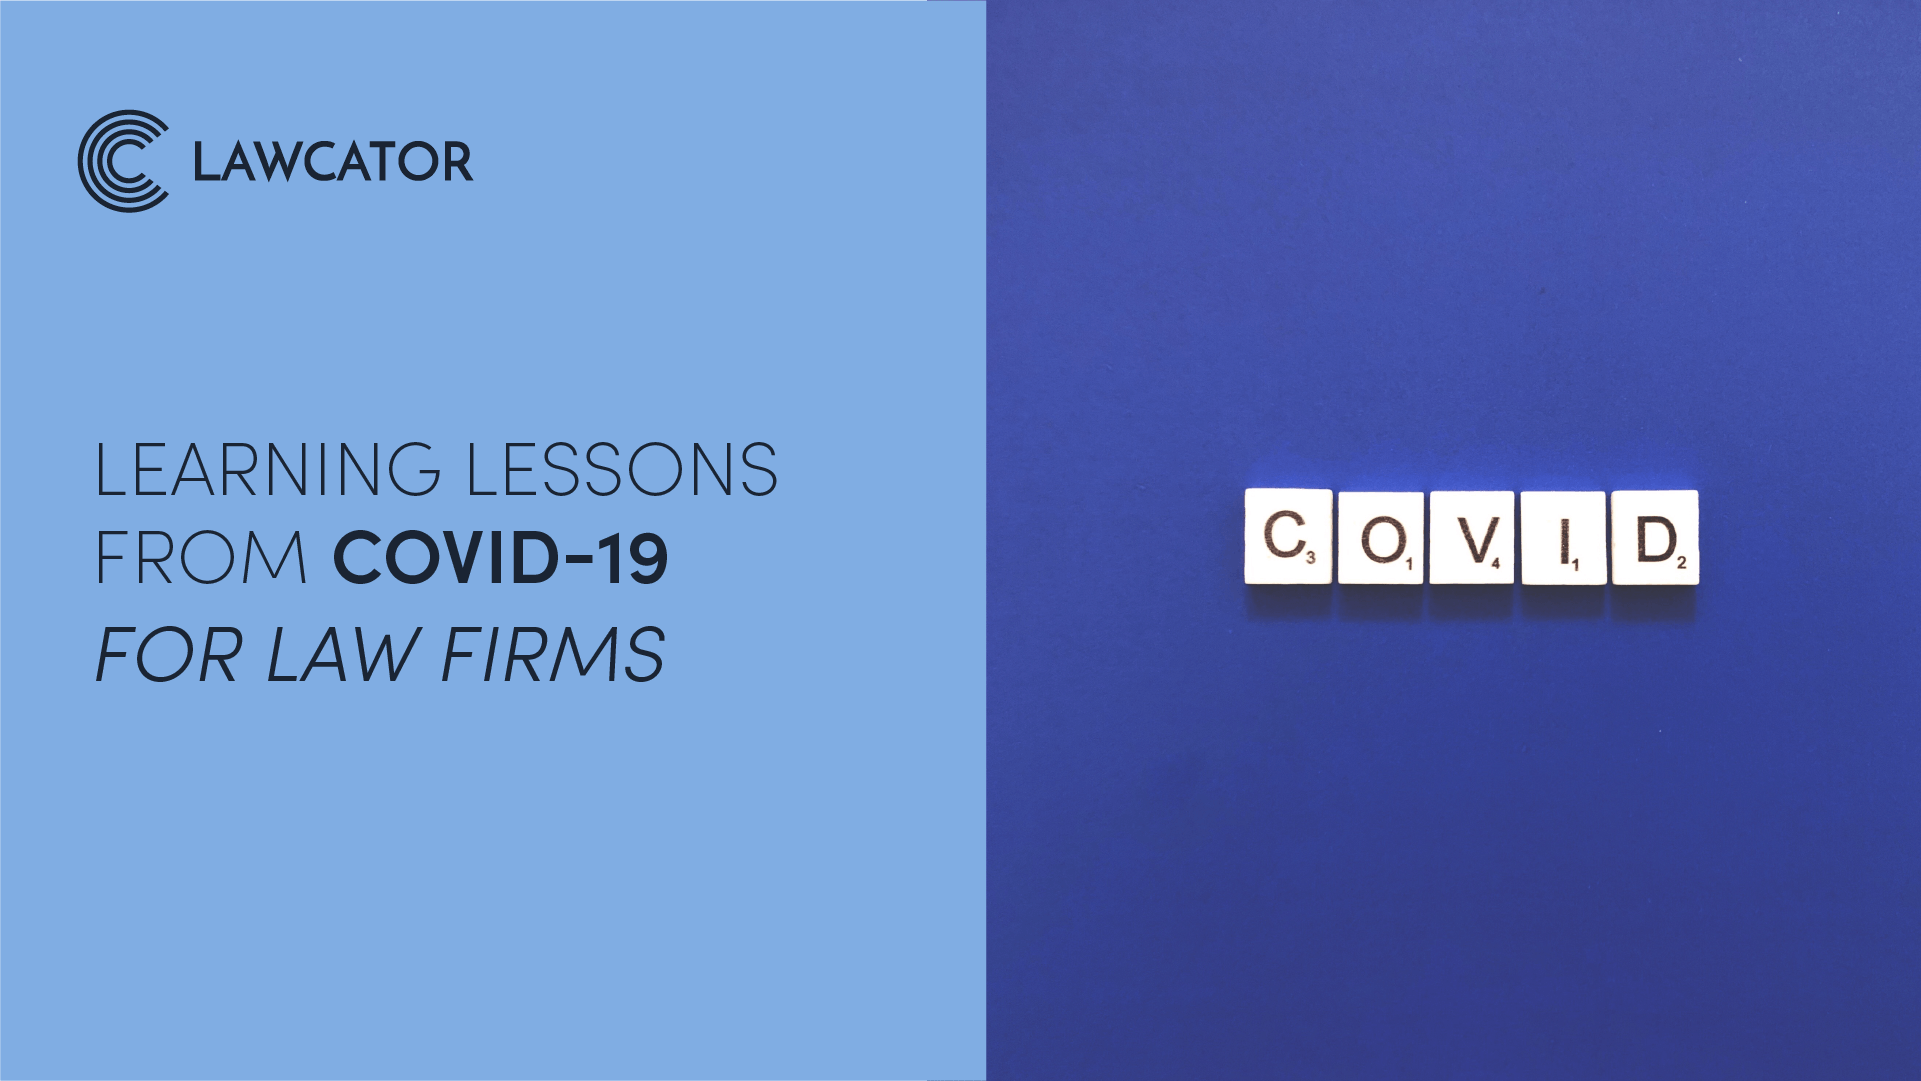 Learning Lessons from Covid-19 for Law Firms